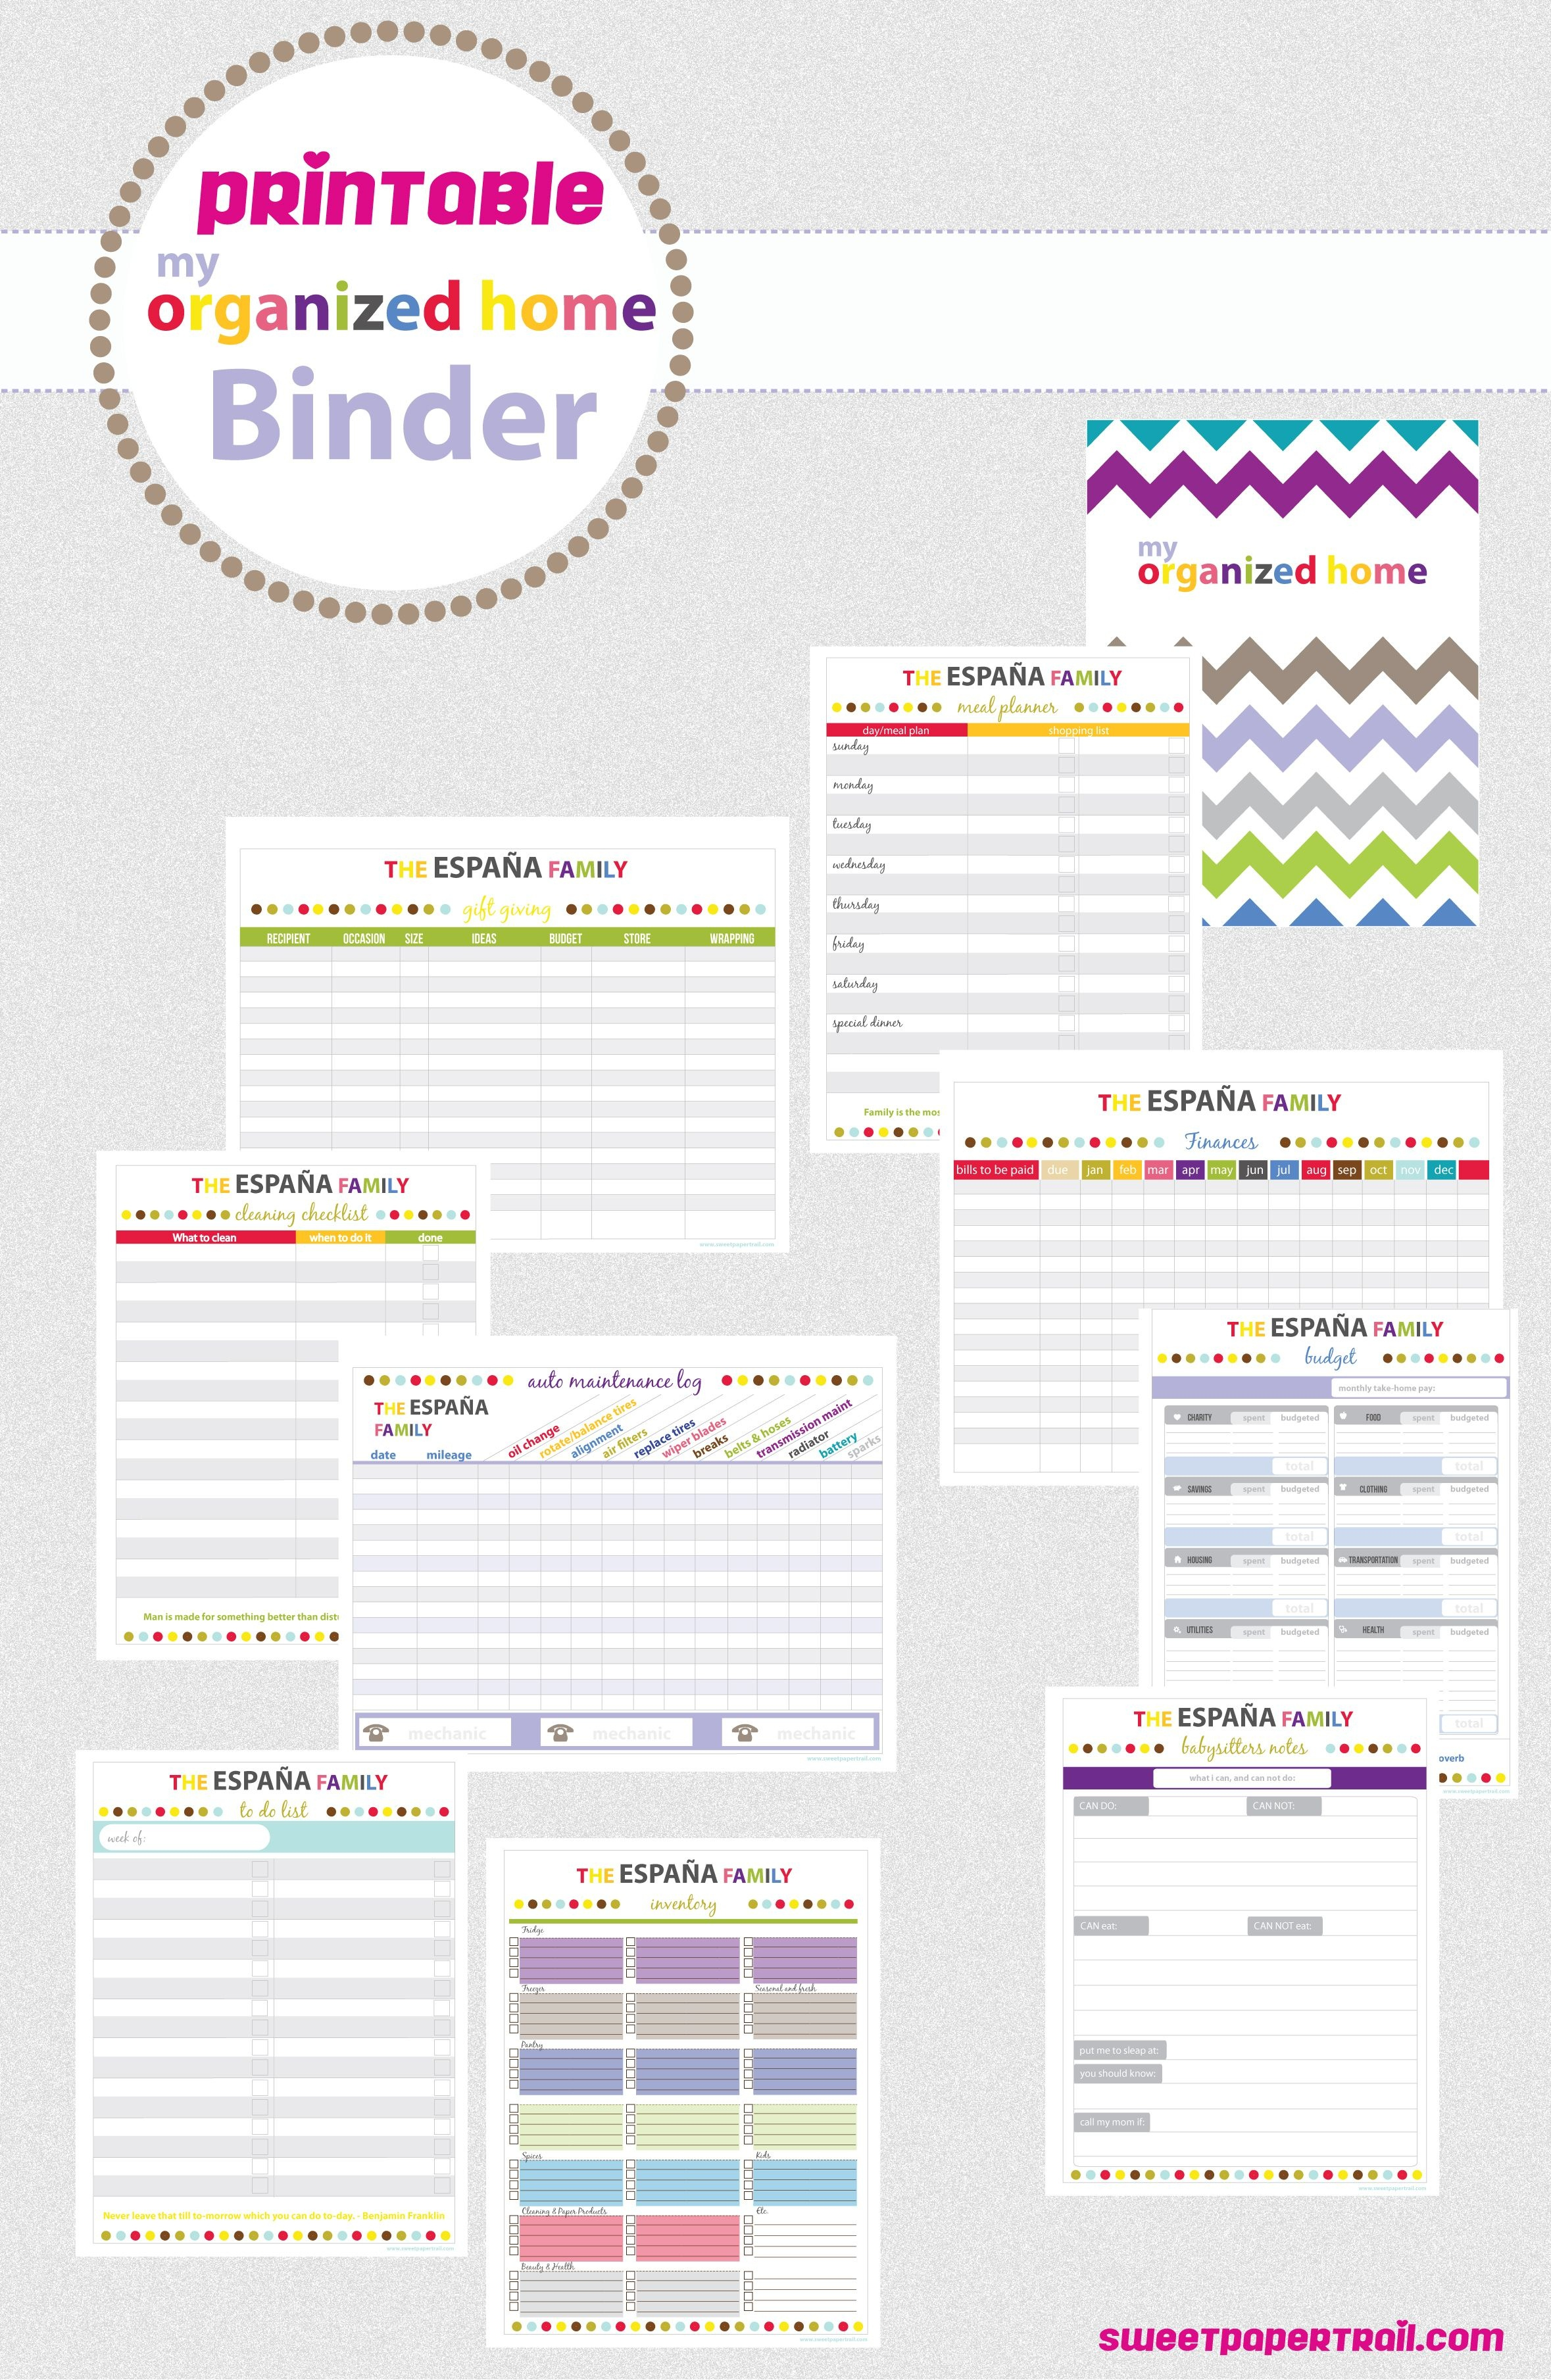 Printable 2013 Planner | Budget | Binder Organization, Home - Free Printable Home Organizer Notebook